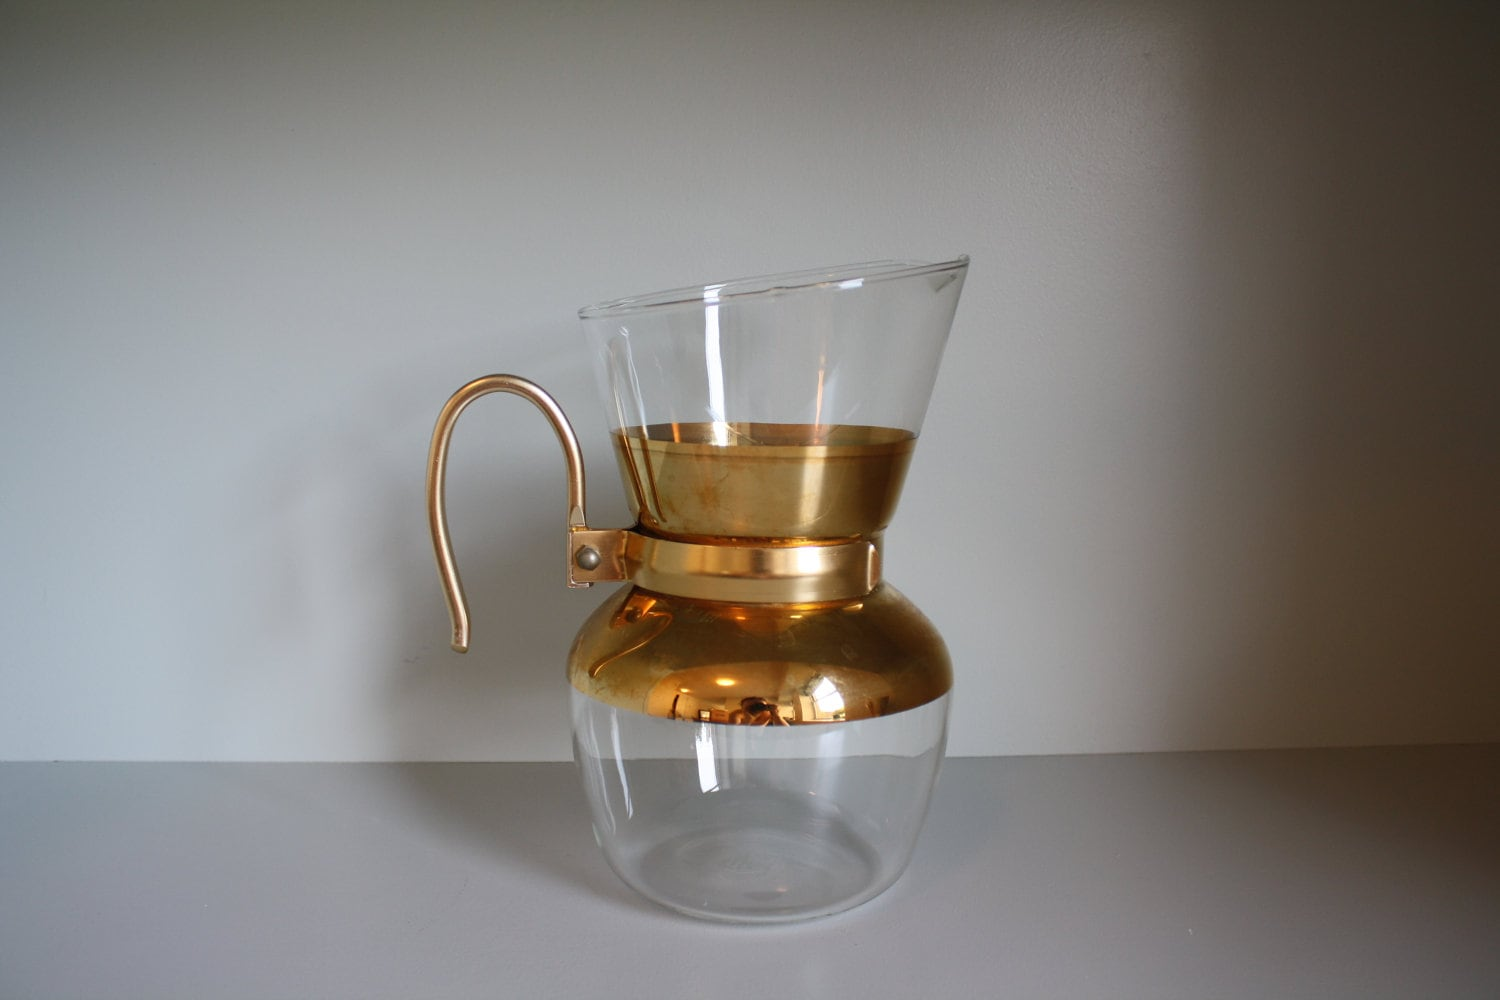 Curtis gold drip coffee maker with filter by AnnieGirlVintage